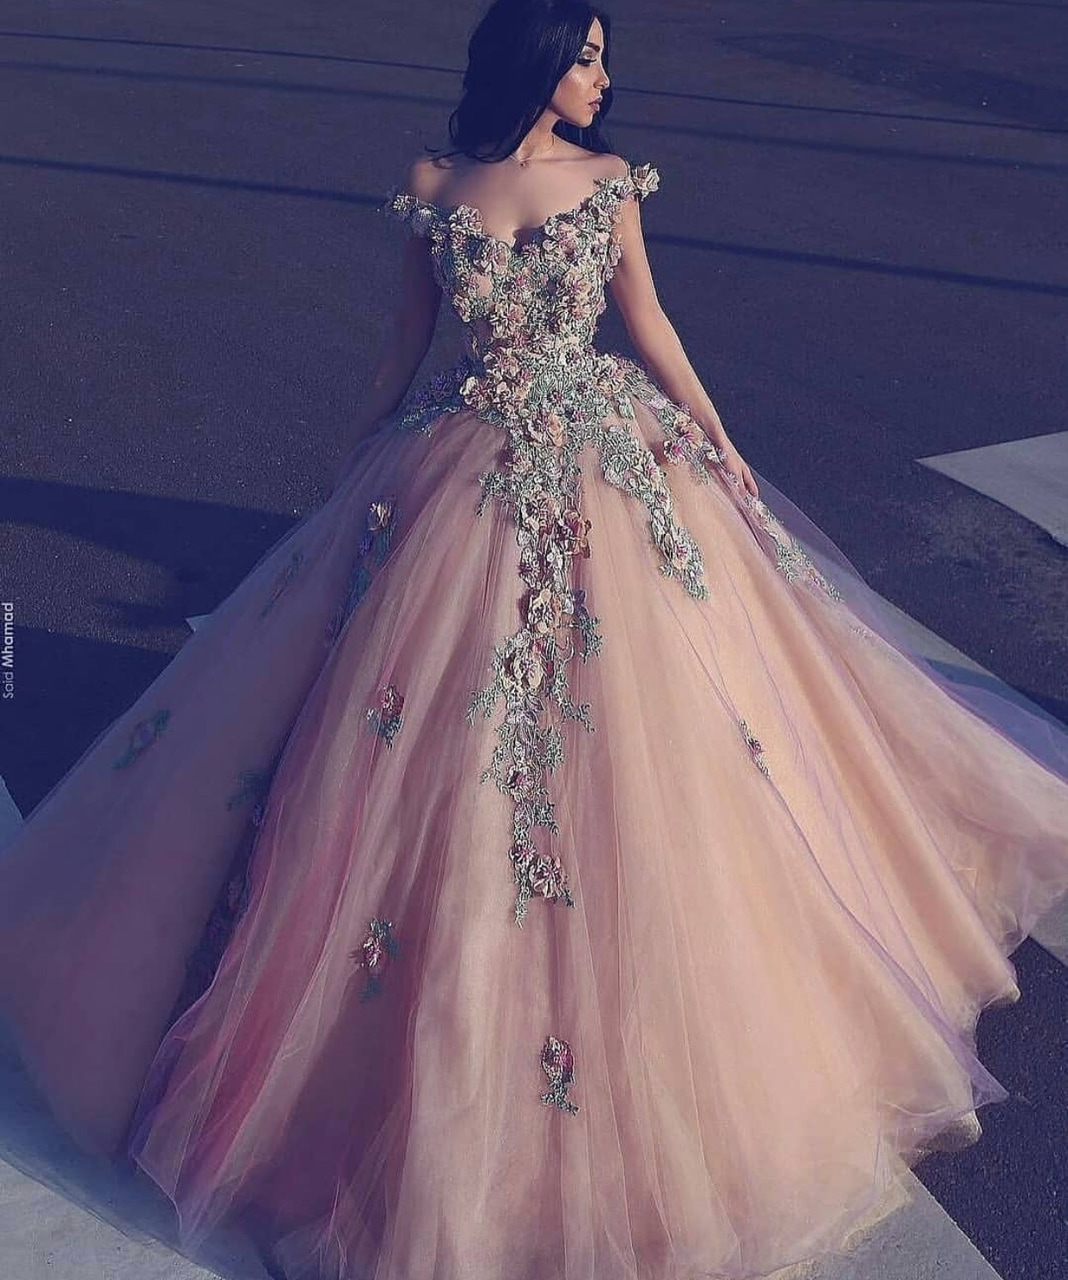 b0a5970094bc Champagne off shoulder tulle long prom dress, a-line flowers applique party  dress ...